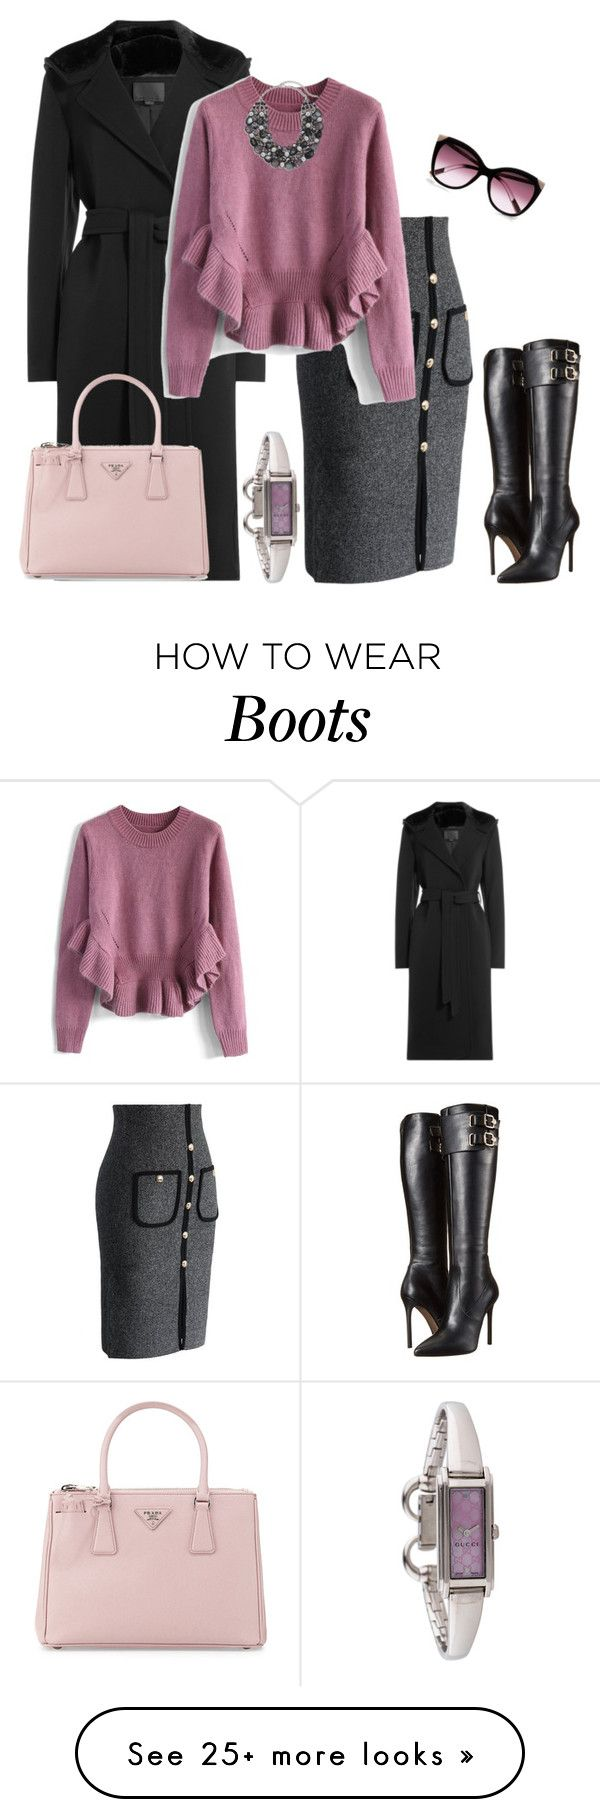 """outfit 3096"" by natalyag on Polyvore featuring Alexander Wang, Chicwish…"